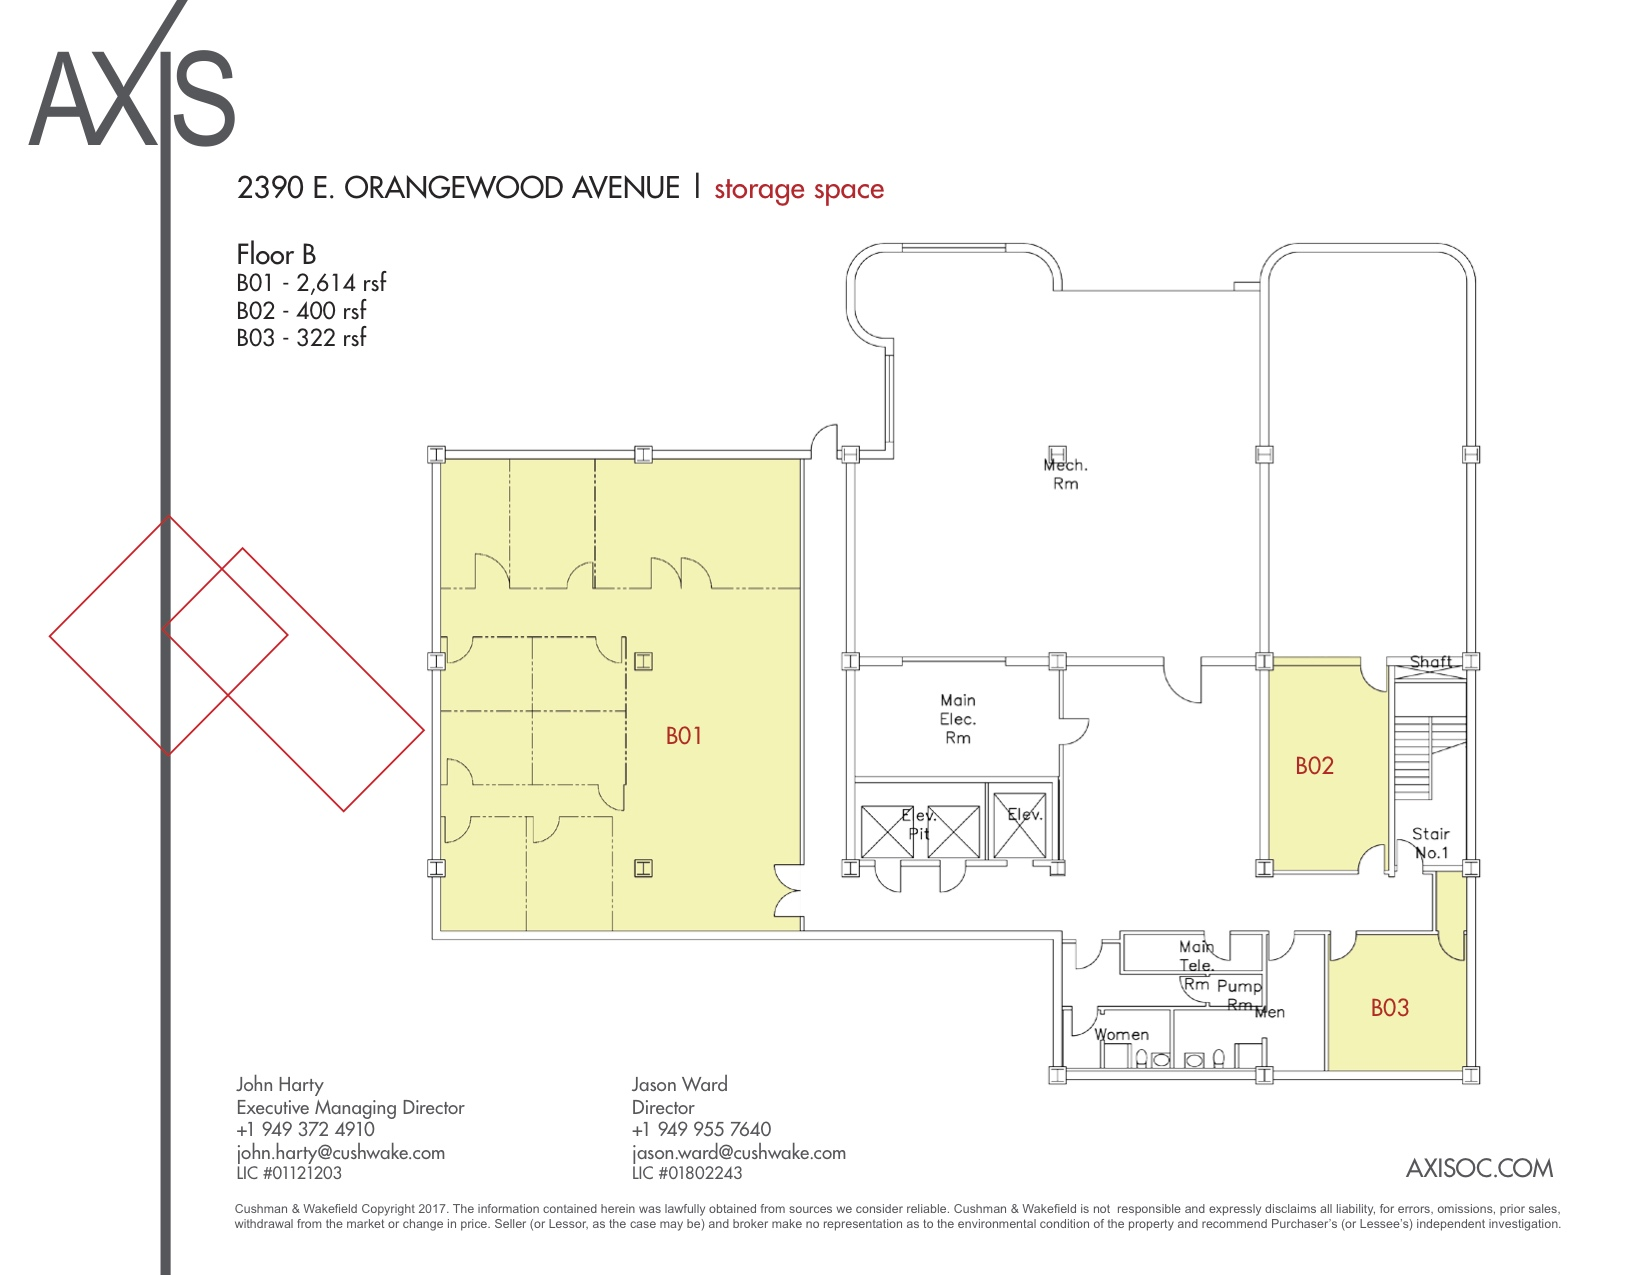 Axis Floor Plans_Page_01.jpg